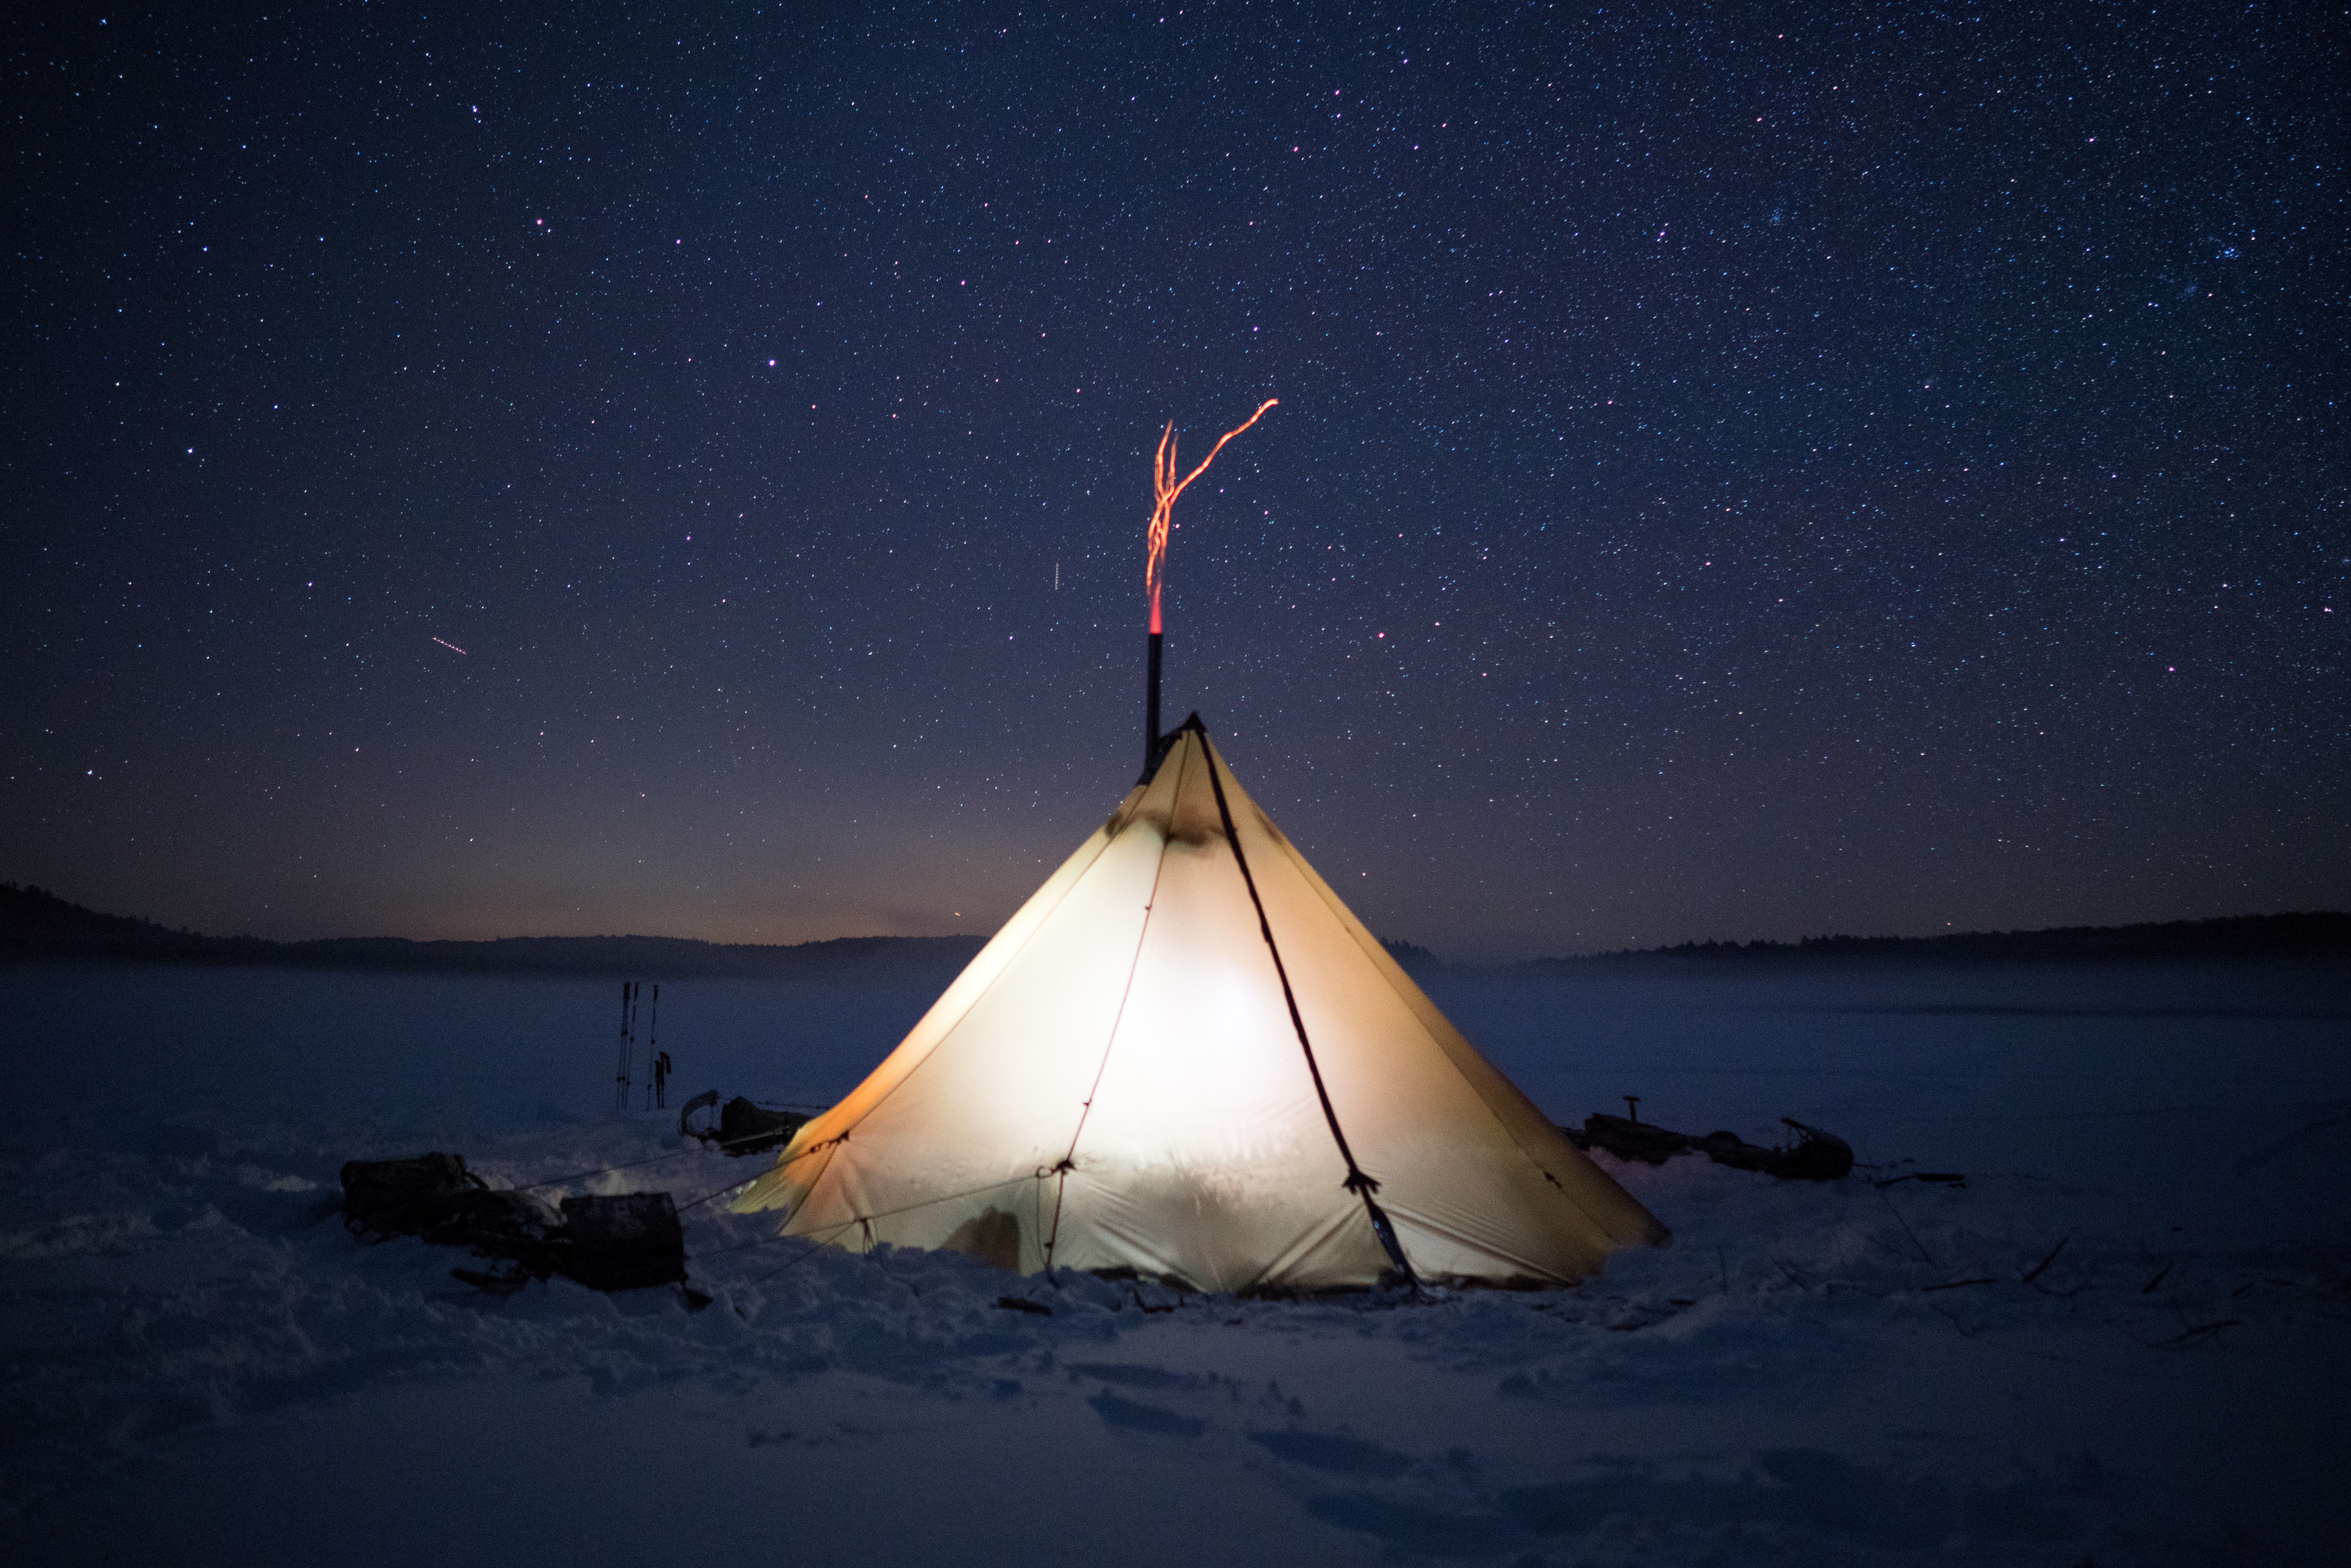 seek-outside-6-person-hot-tent-combo-crossing-algonquin16